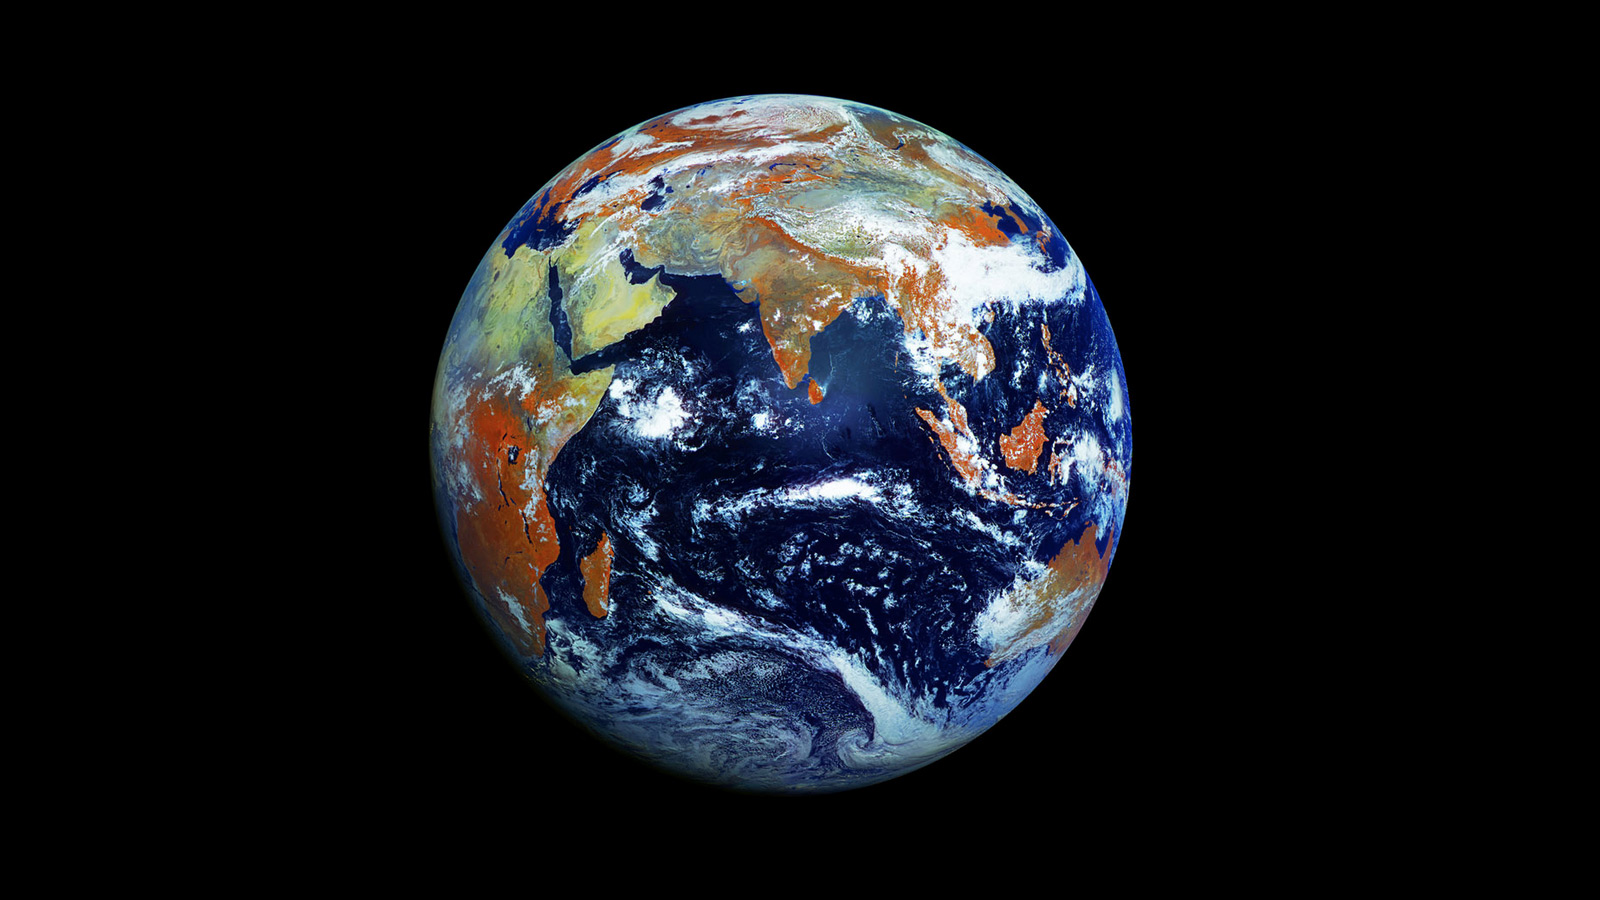 This Is The Definitive Photography Of Earth